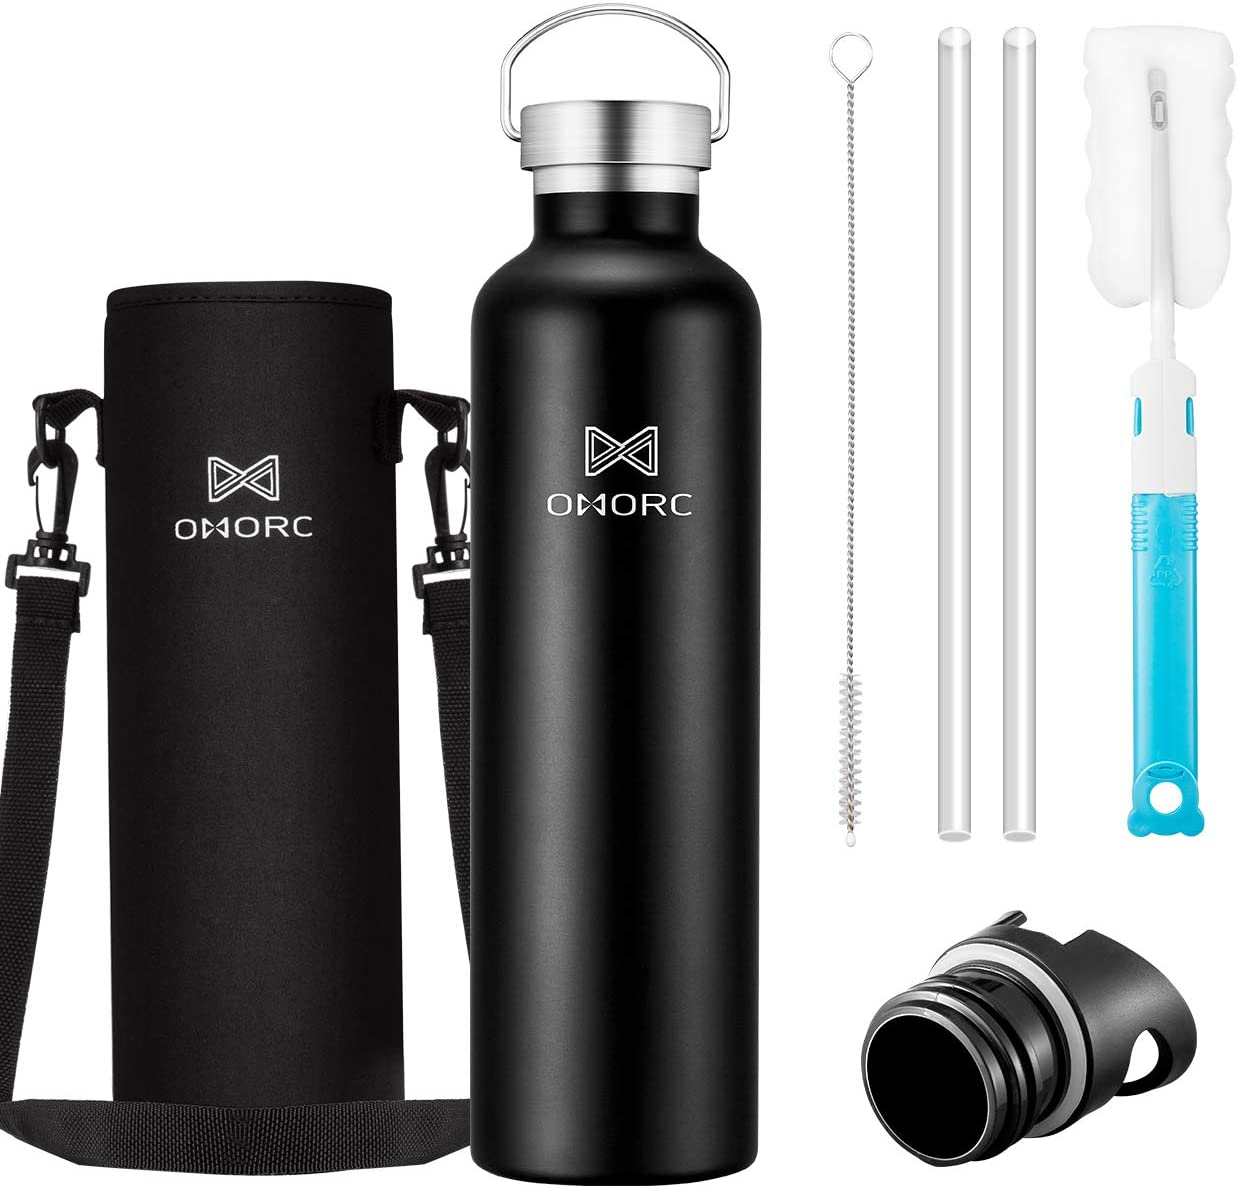 OMORC 316 Stainless Steel Water Bottle-20oz,34oz,Double Wall Vacuum Insulated Water Bottle,Stay Cold for 48 Hrs,Hot for 24 Hrs, Wide Mouth Thermo Travel Sports Water Bottle with Straw and 2 Lids